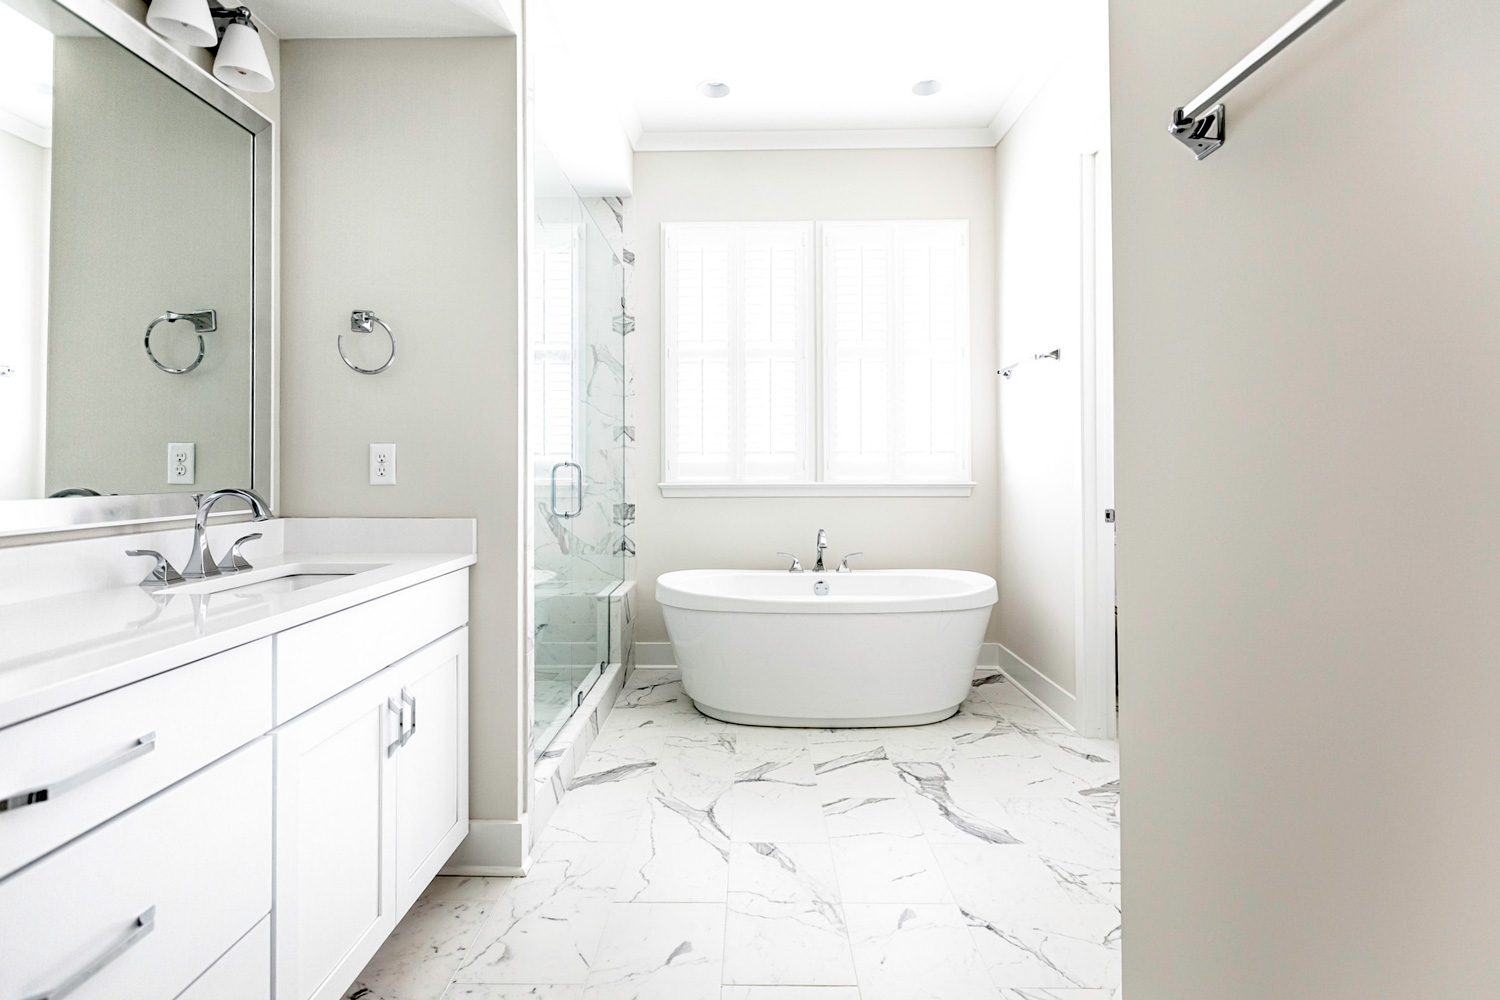 Bathroom Faucets and Hardware Can Make or Break a Design